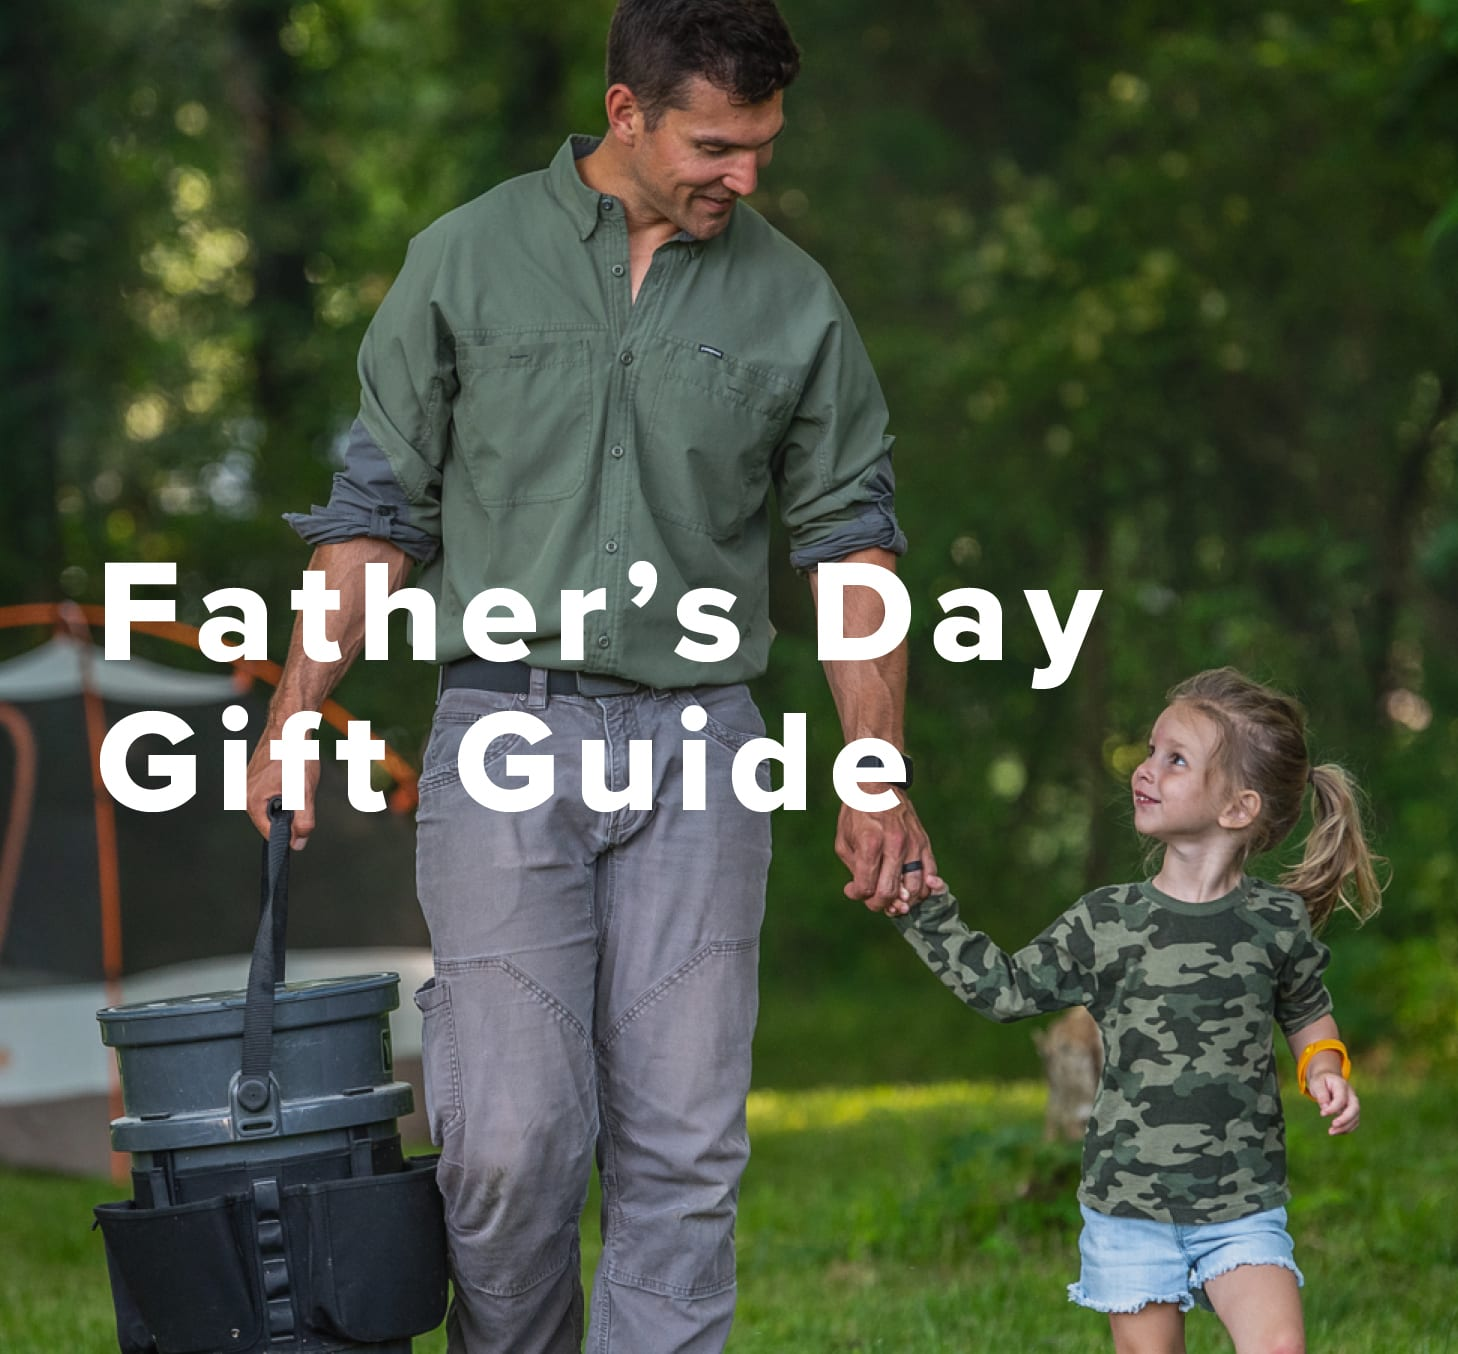 Father's Day Gift Guide, image of a father and daughter camping